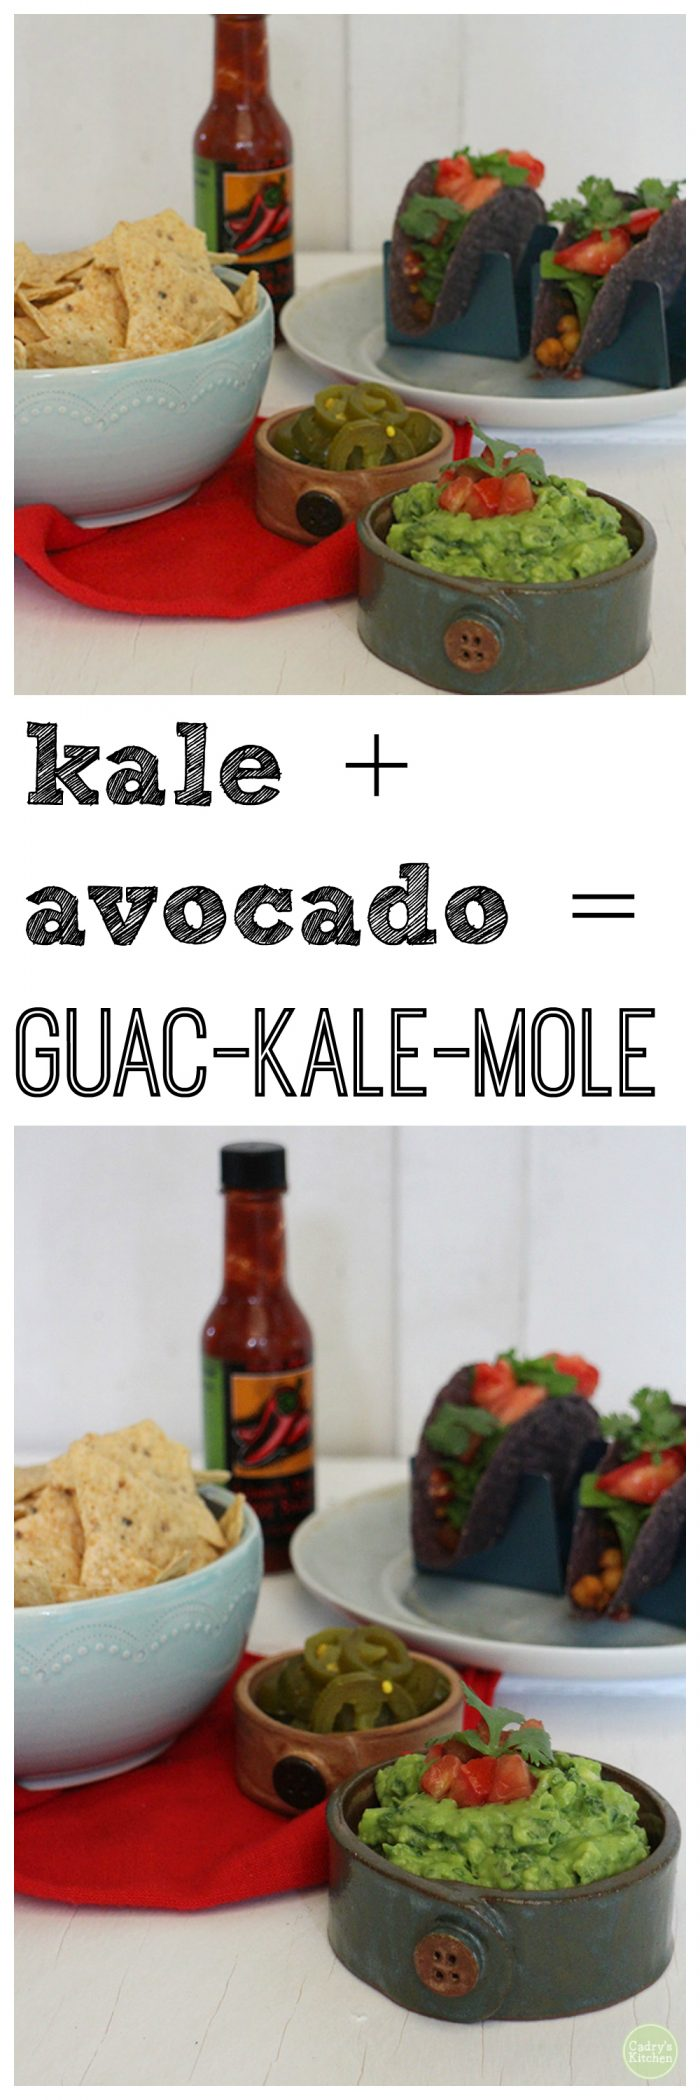 Give your favorite dip a makeover with kale. Kale + avocado = guac-kale-mole. This guacamole is vegan & gluten-free | cadryskitchen.com